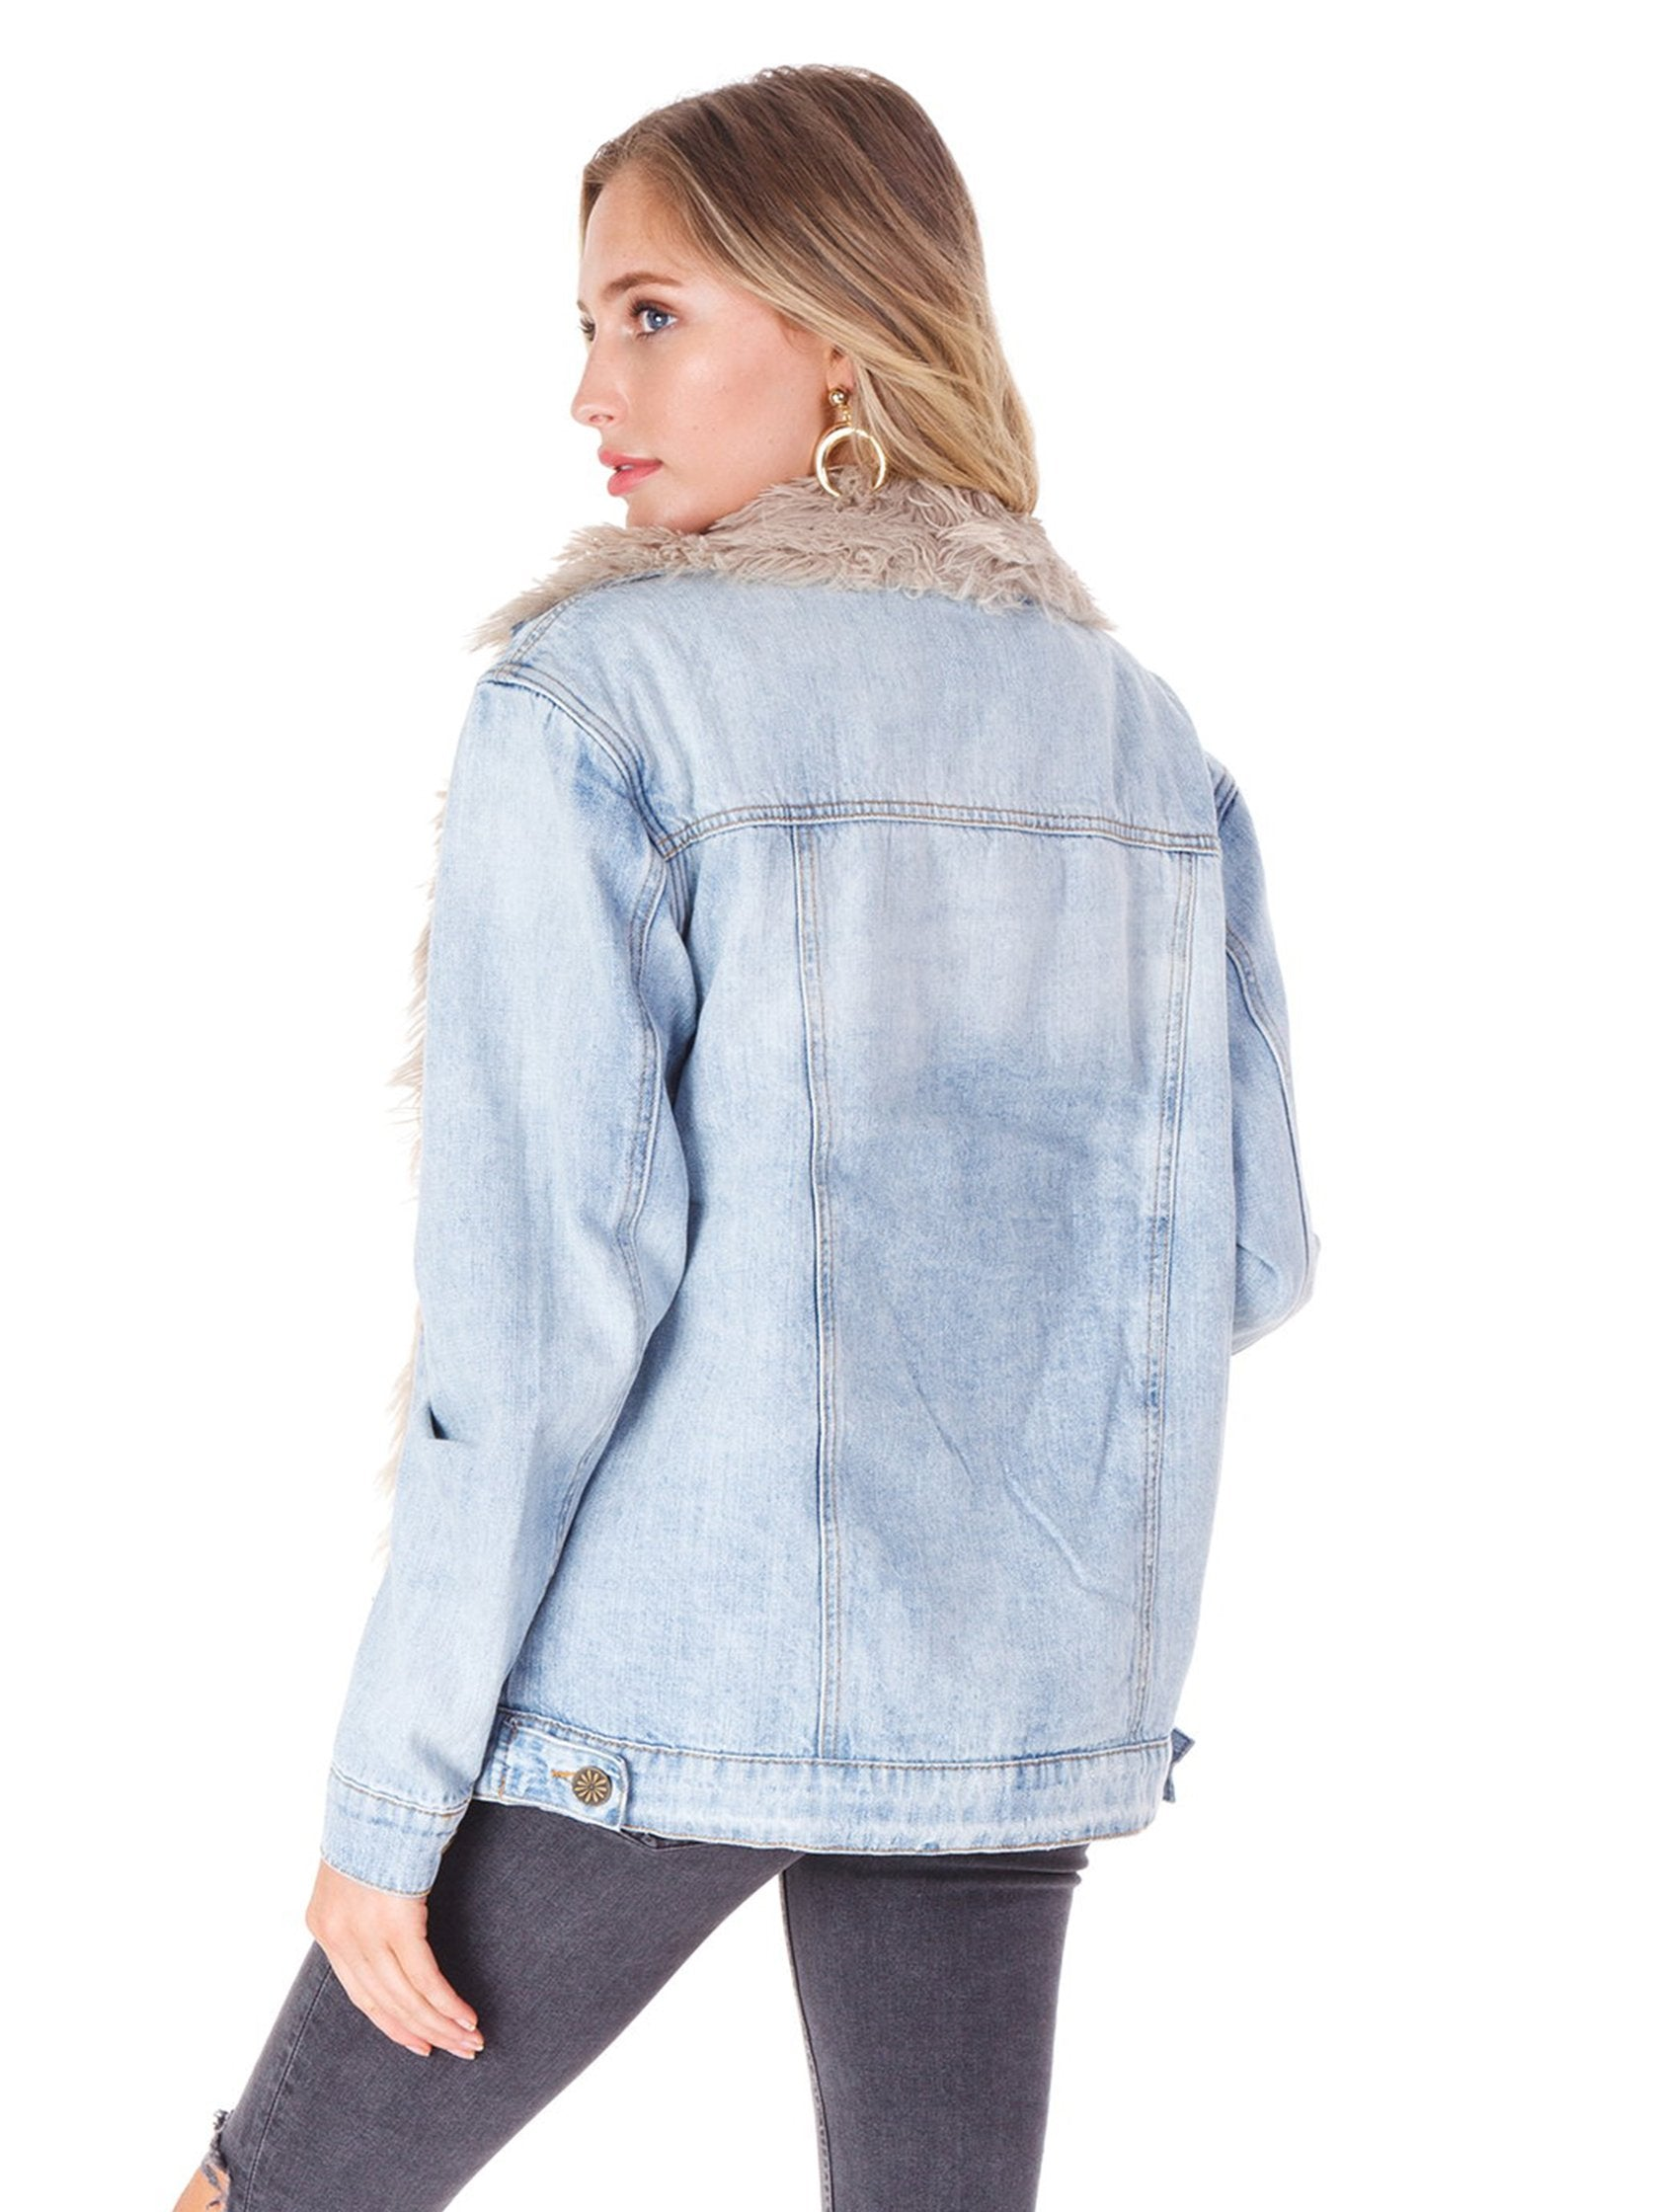 Women outfit in a jacket rental from Show Me Your Mumu called Durado Denim Jacket